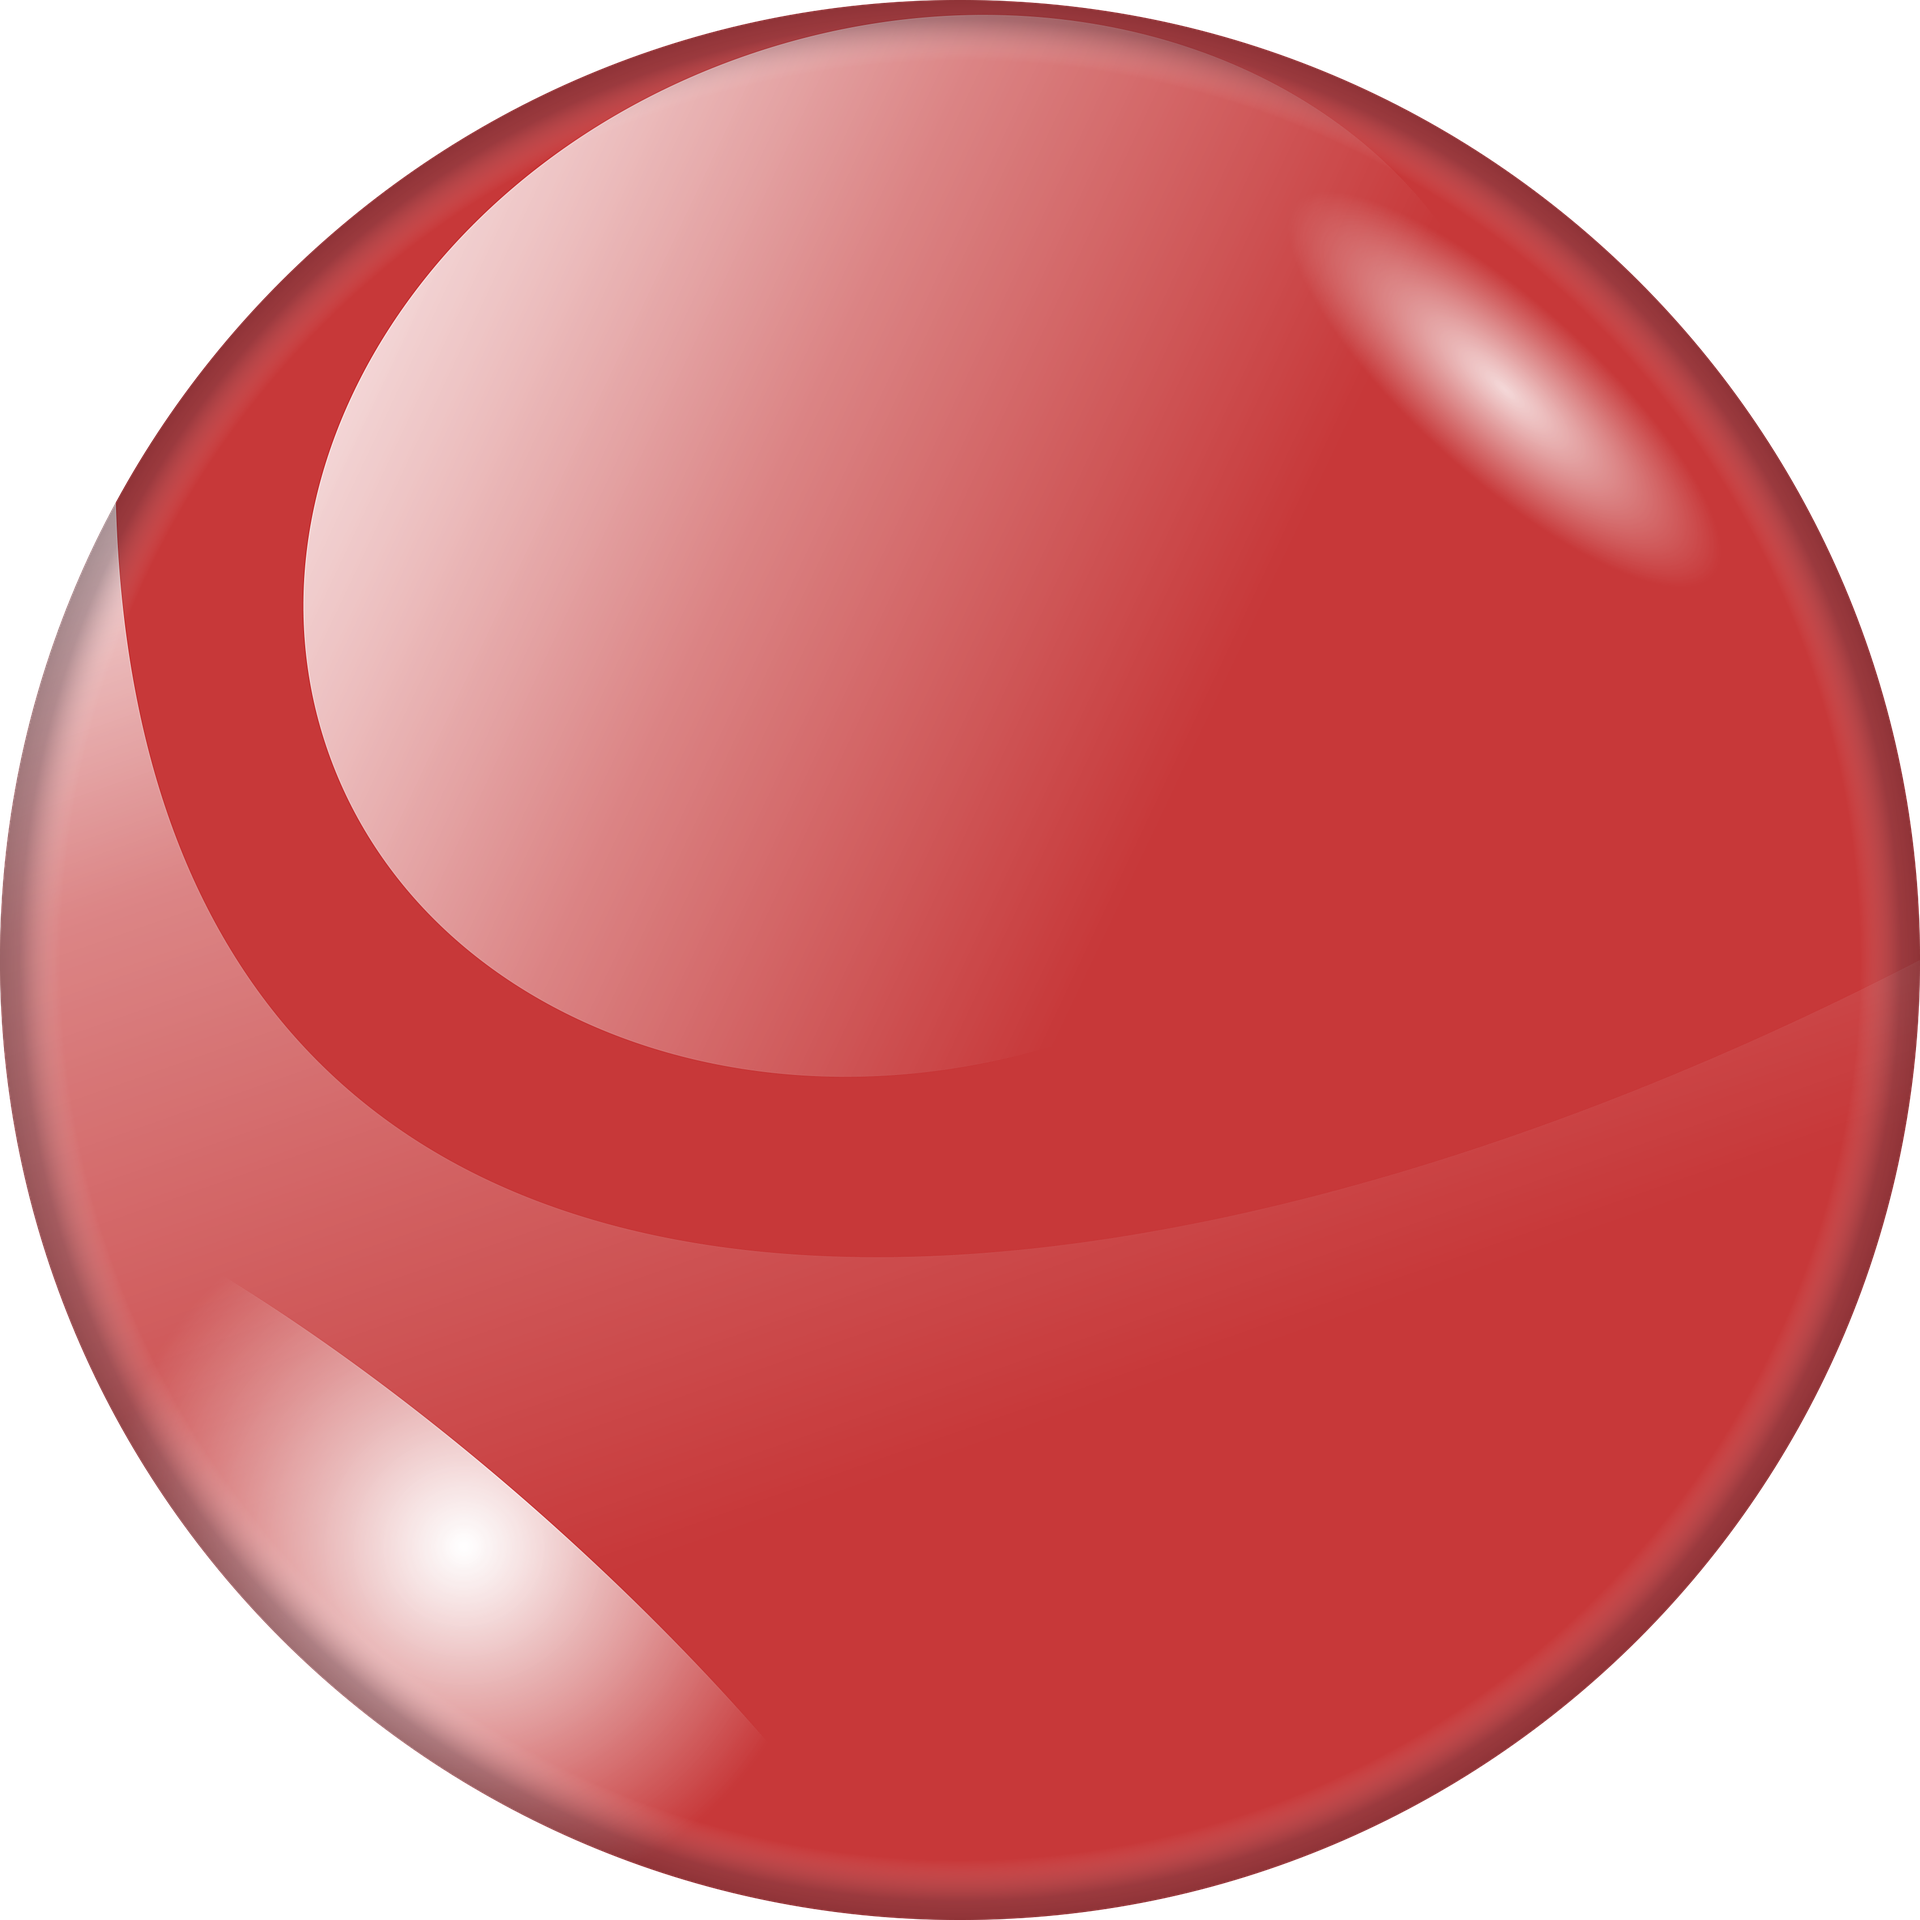 bouton rouge.png